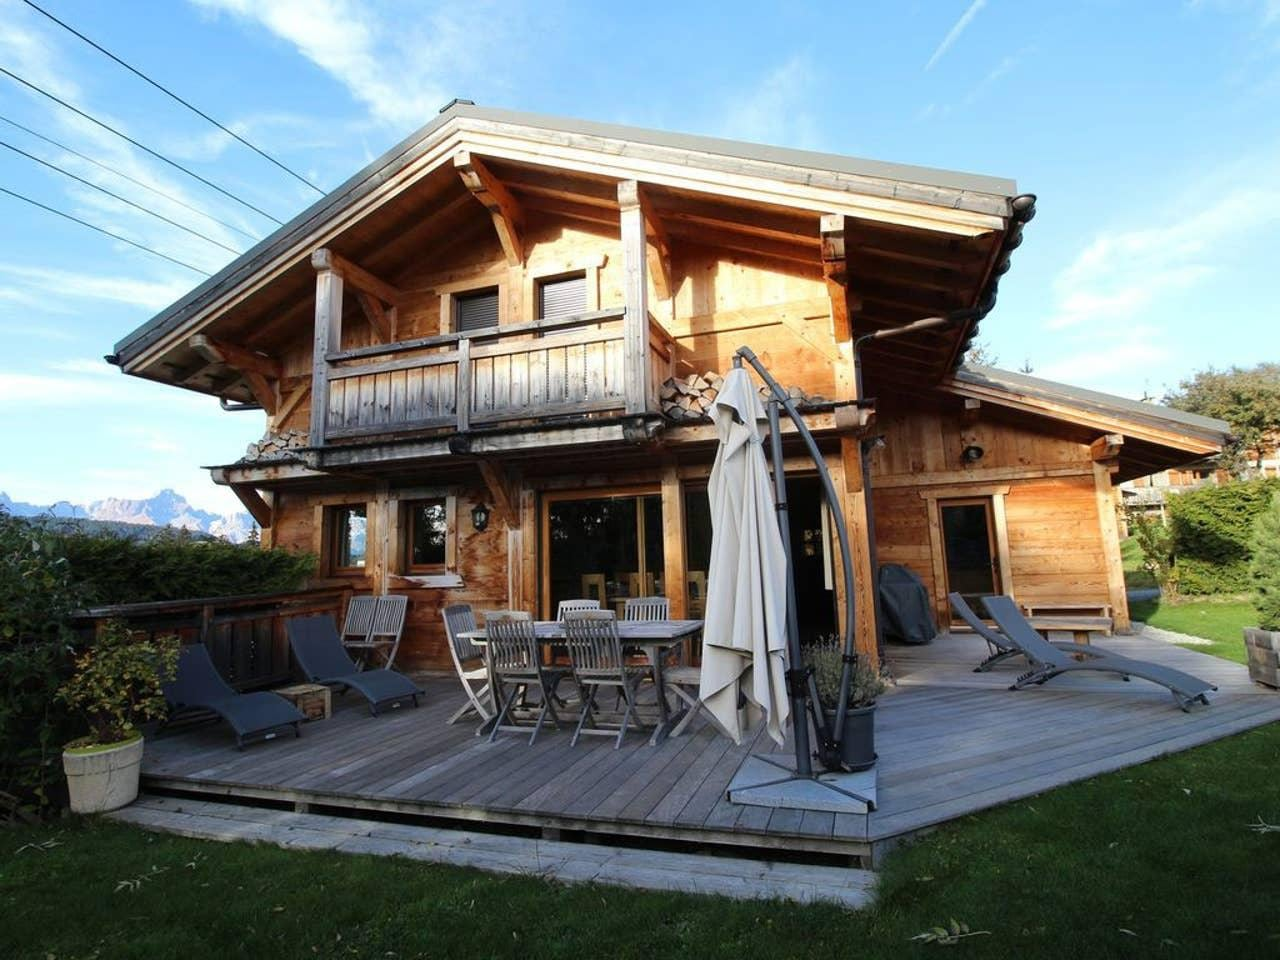 Property Image 1 - Classic Wooden Chalet, Perfect for Family Holidays